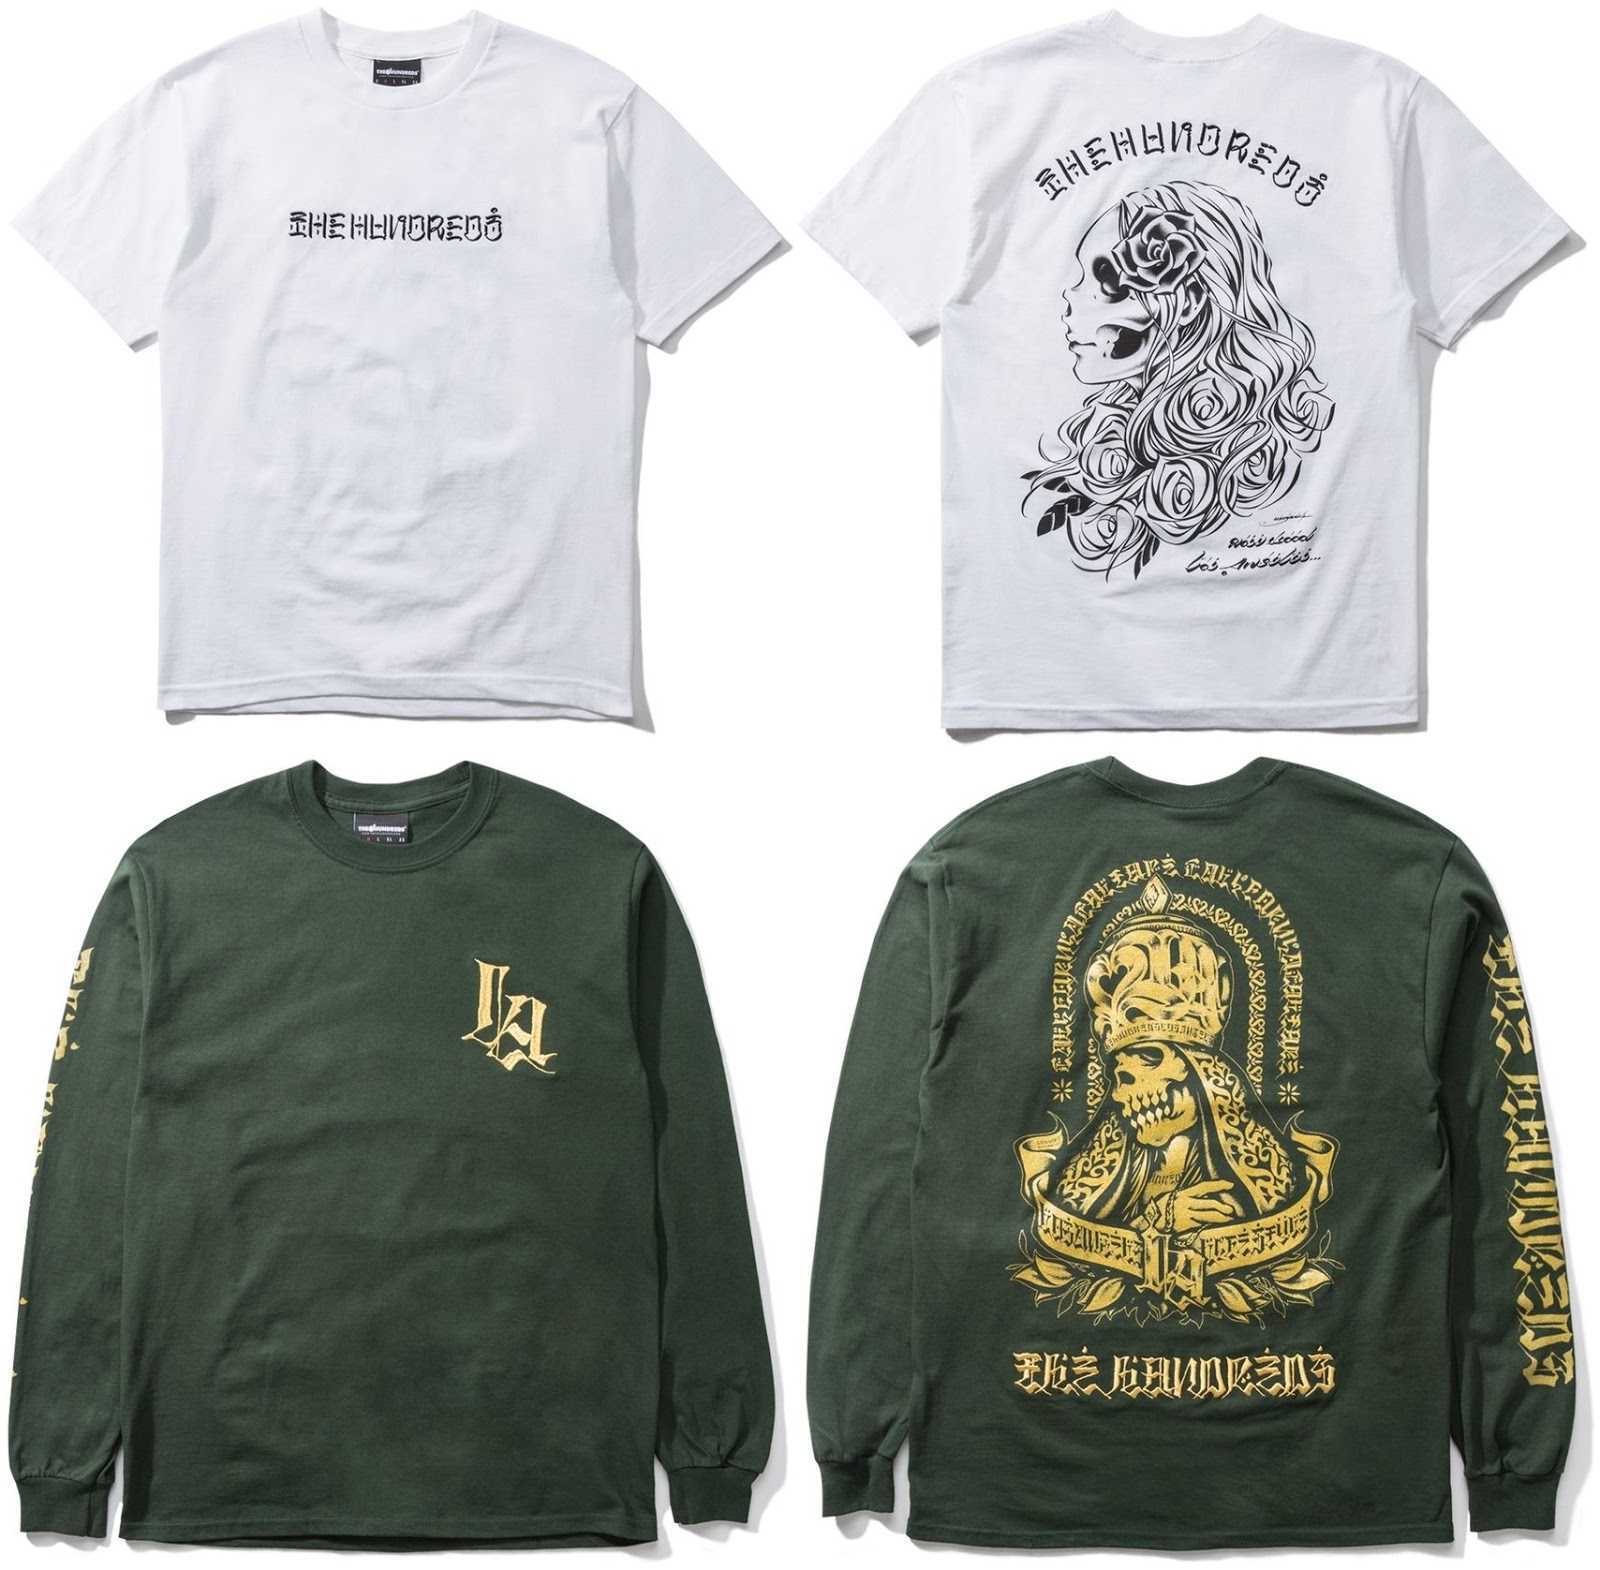 6de7a7f14a6 The Blot Says...  The Hundreds by Usugrow Apparel Capsule Collection